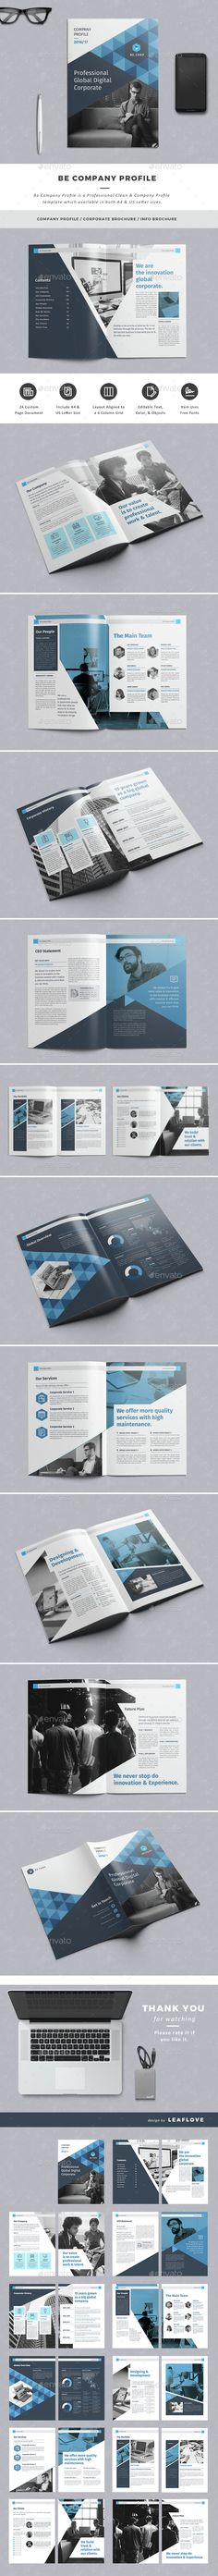 Bundle Company Profile Template Company profile, Brochure - professional business profile template